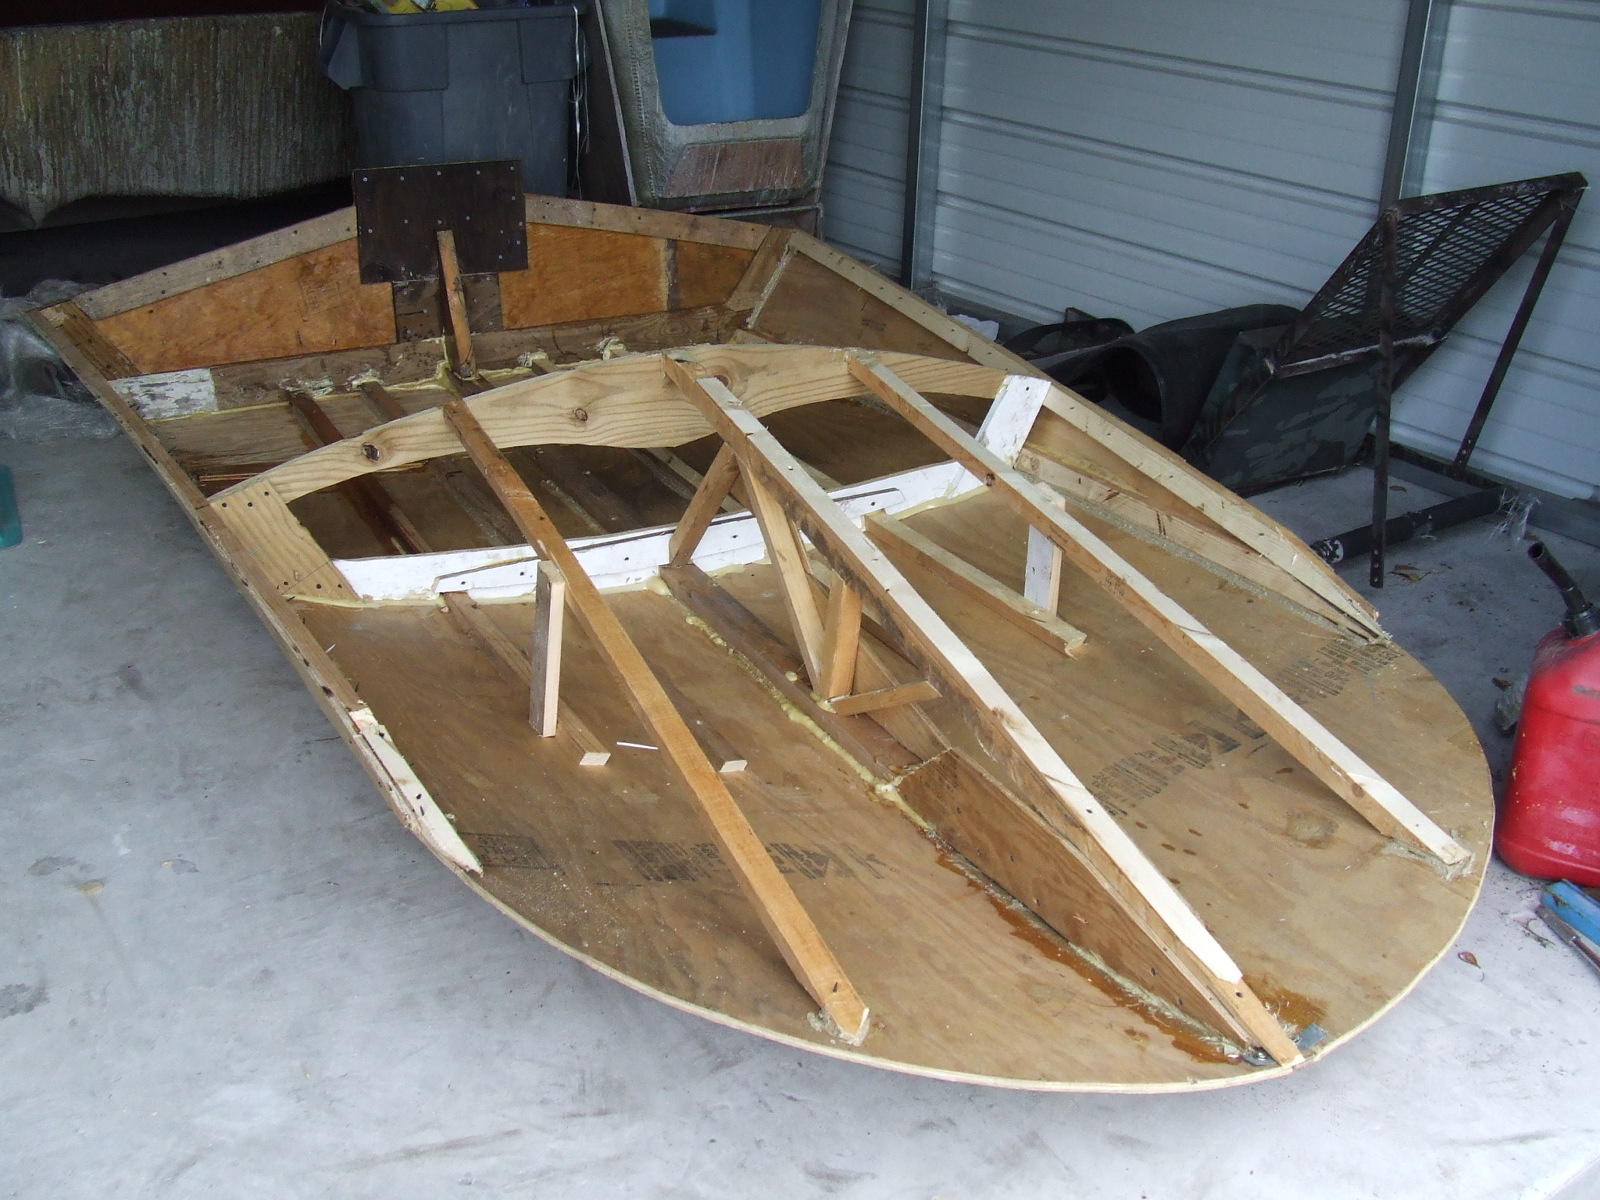 Mini Most scaled up 25% | Boat Design Net